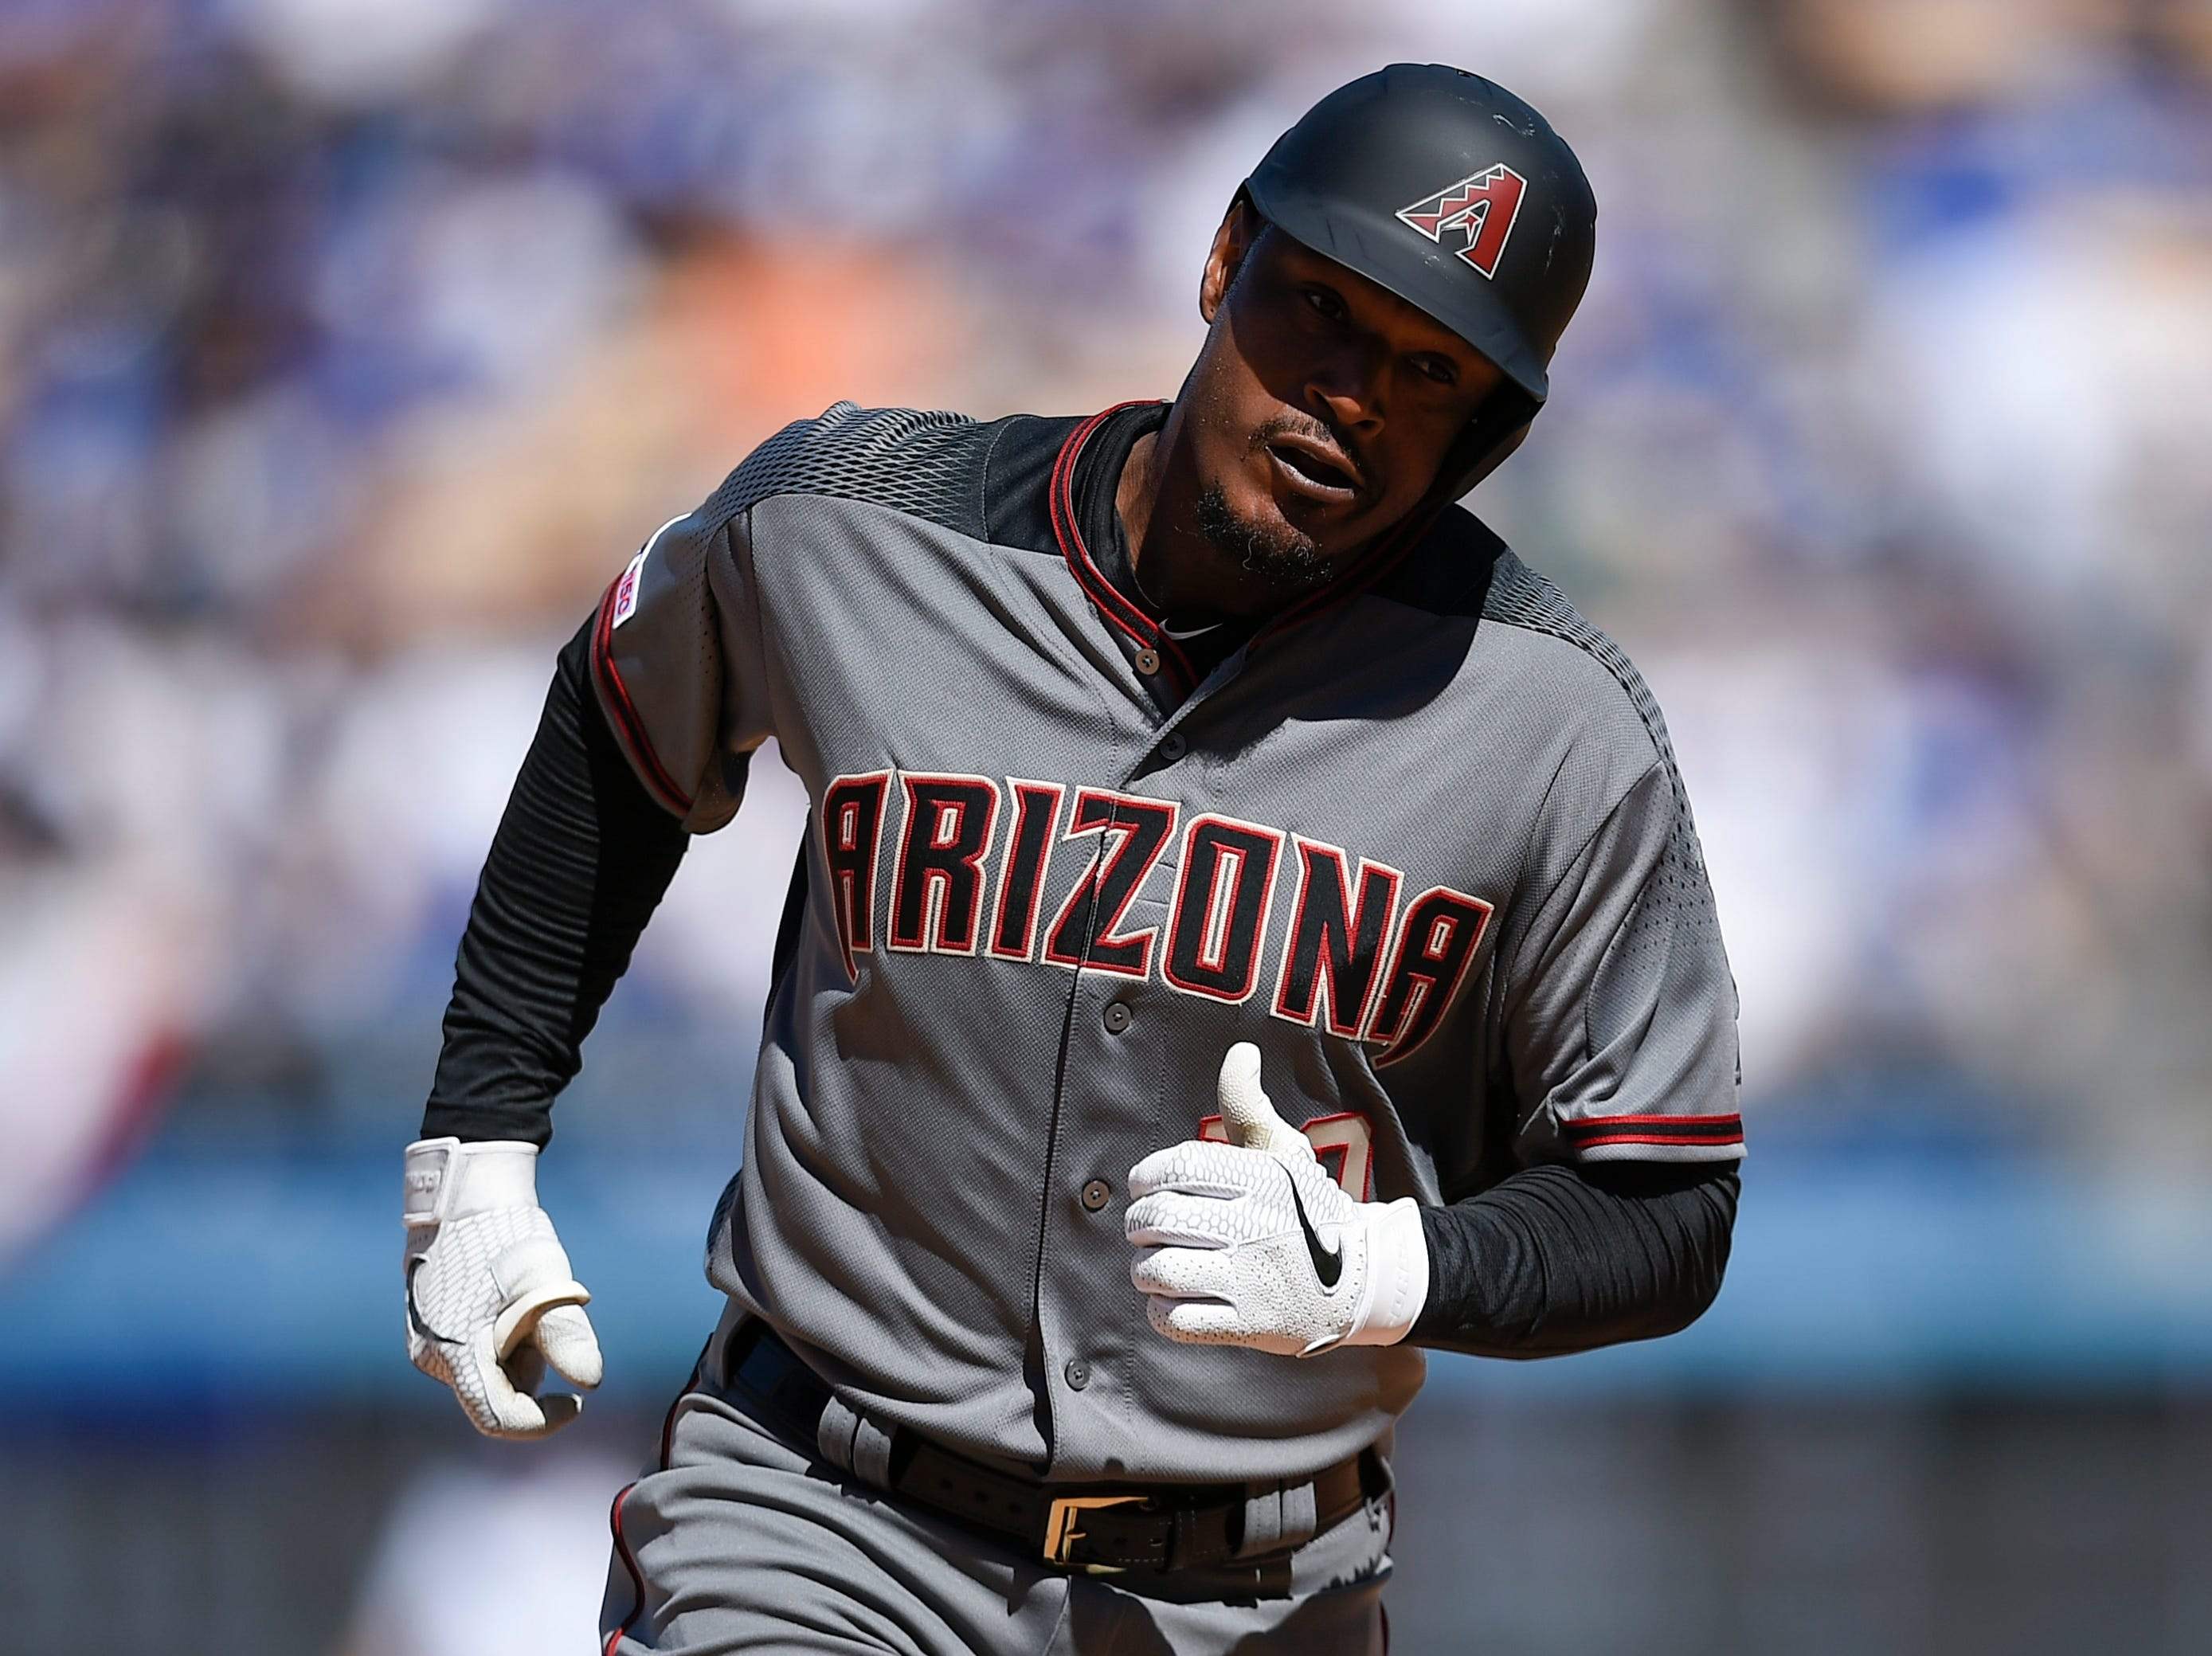 Mar 28, 2019; Los Angeles, CA, USA; Arizona Diamondbacks right fielder Adam Jones (10) rounds the bases after a solo home runduring the sixth inning against the Los Angeles Dodgers at Dodger Stadium. Mandatory Credit: Kelvin Kuo-USA TODAY Sports